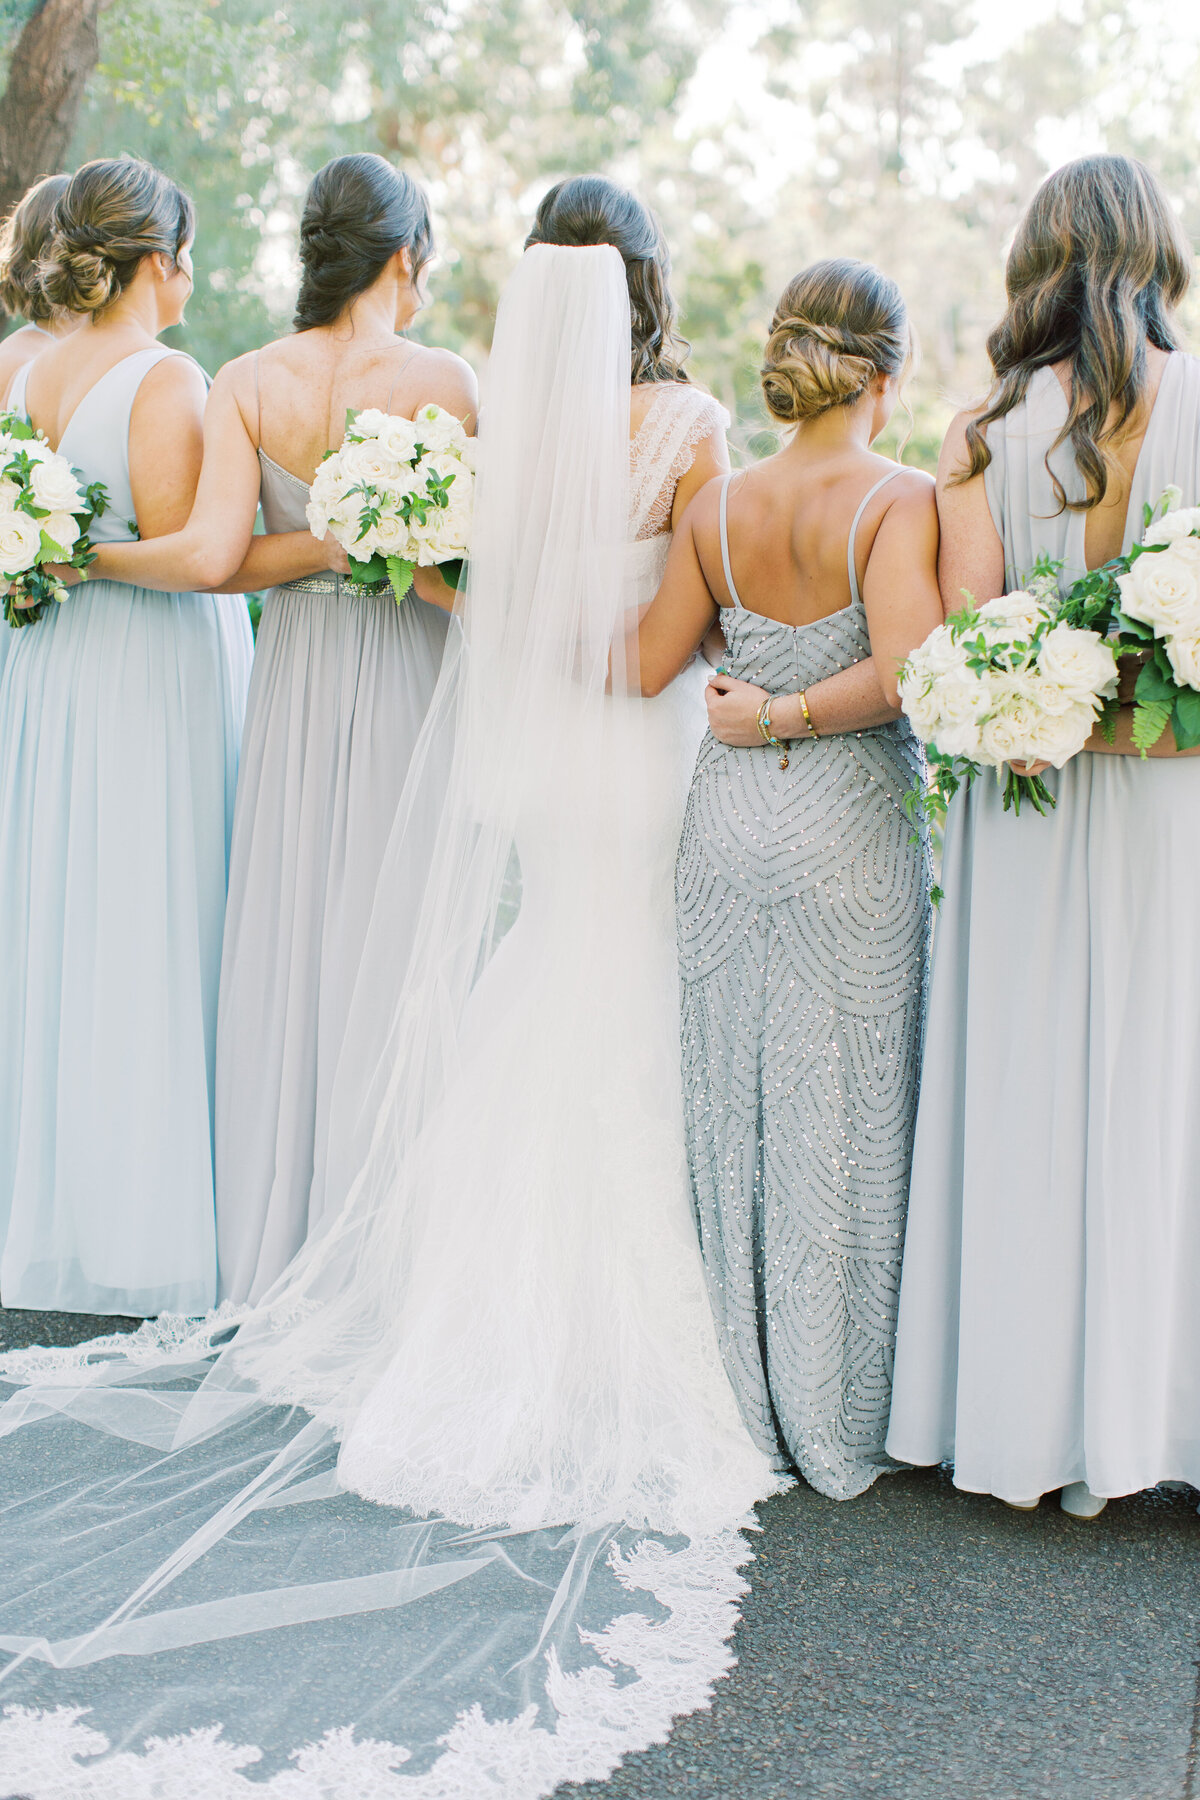 Wheeler_Rancho_Bernardo_Inn_San_Diego_California_Wedding_Devon_Donnahoo_Photography_0196